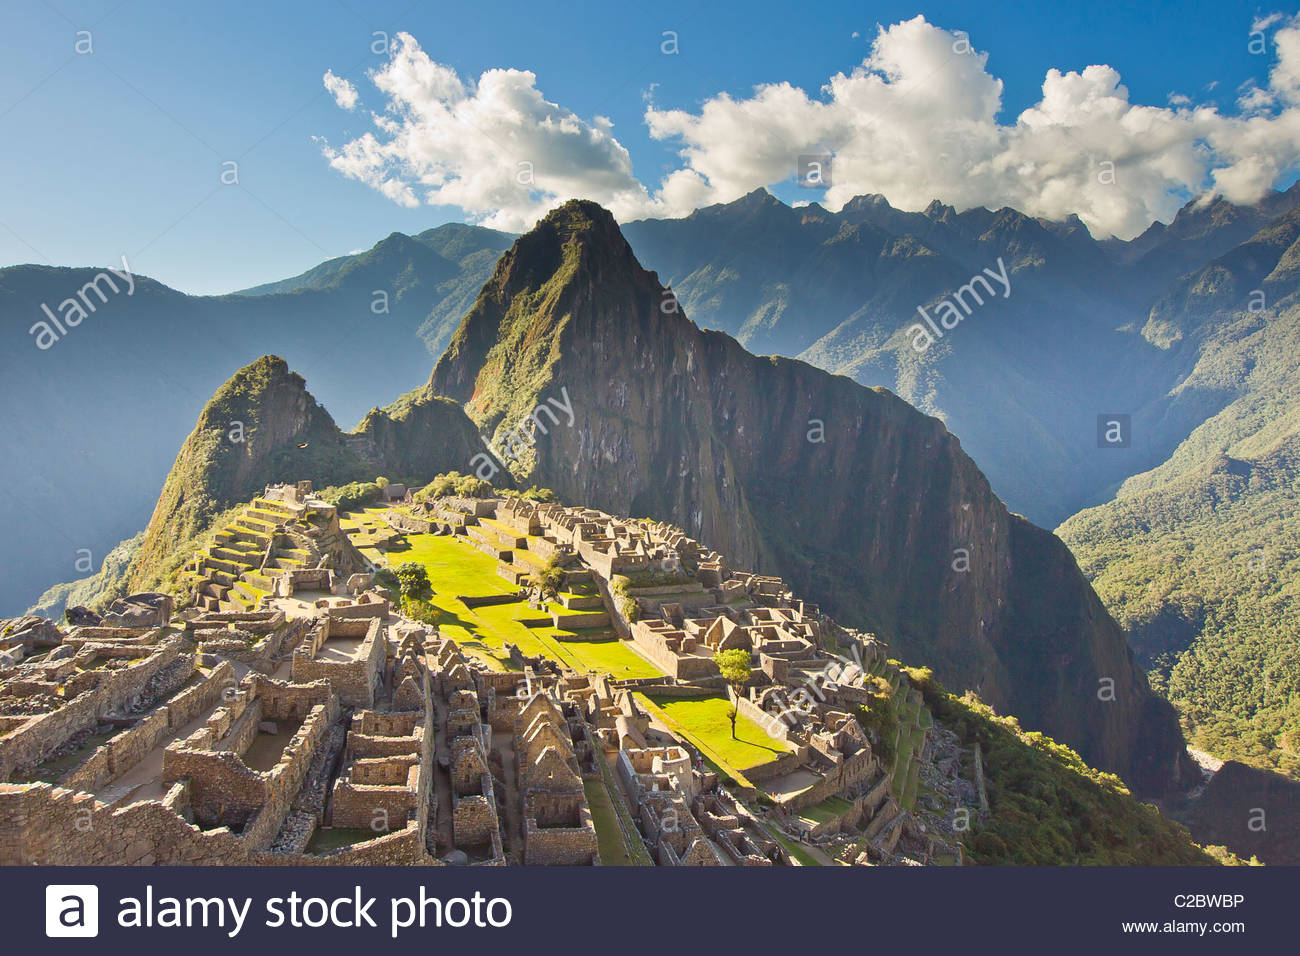 Sun shining through the Andes mountains onto Machu Picchu at sunset. - Stock Image